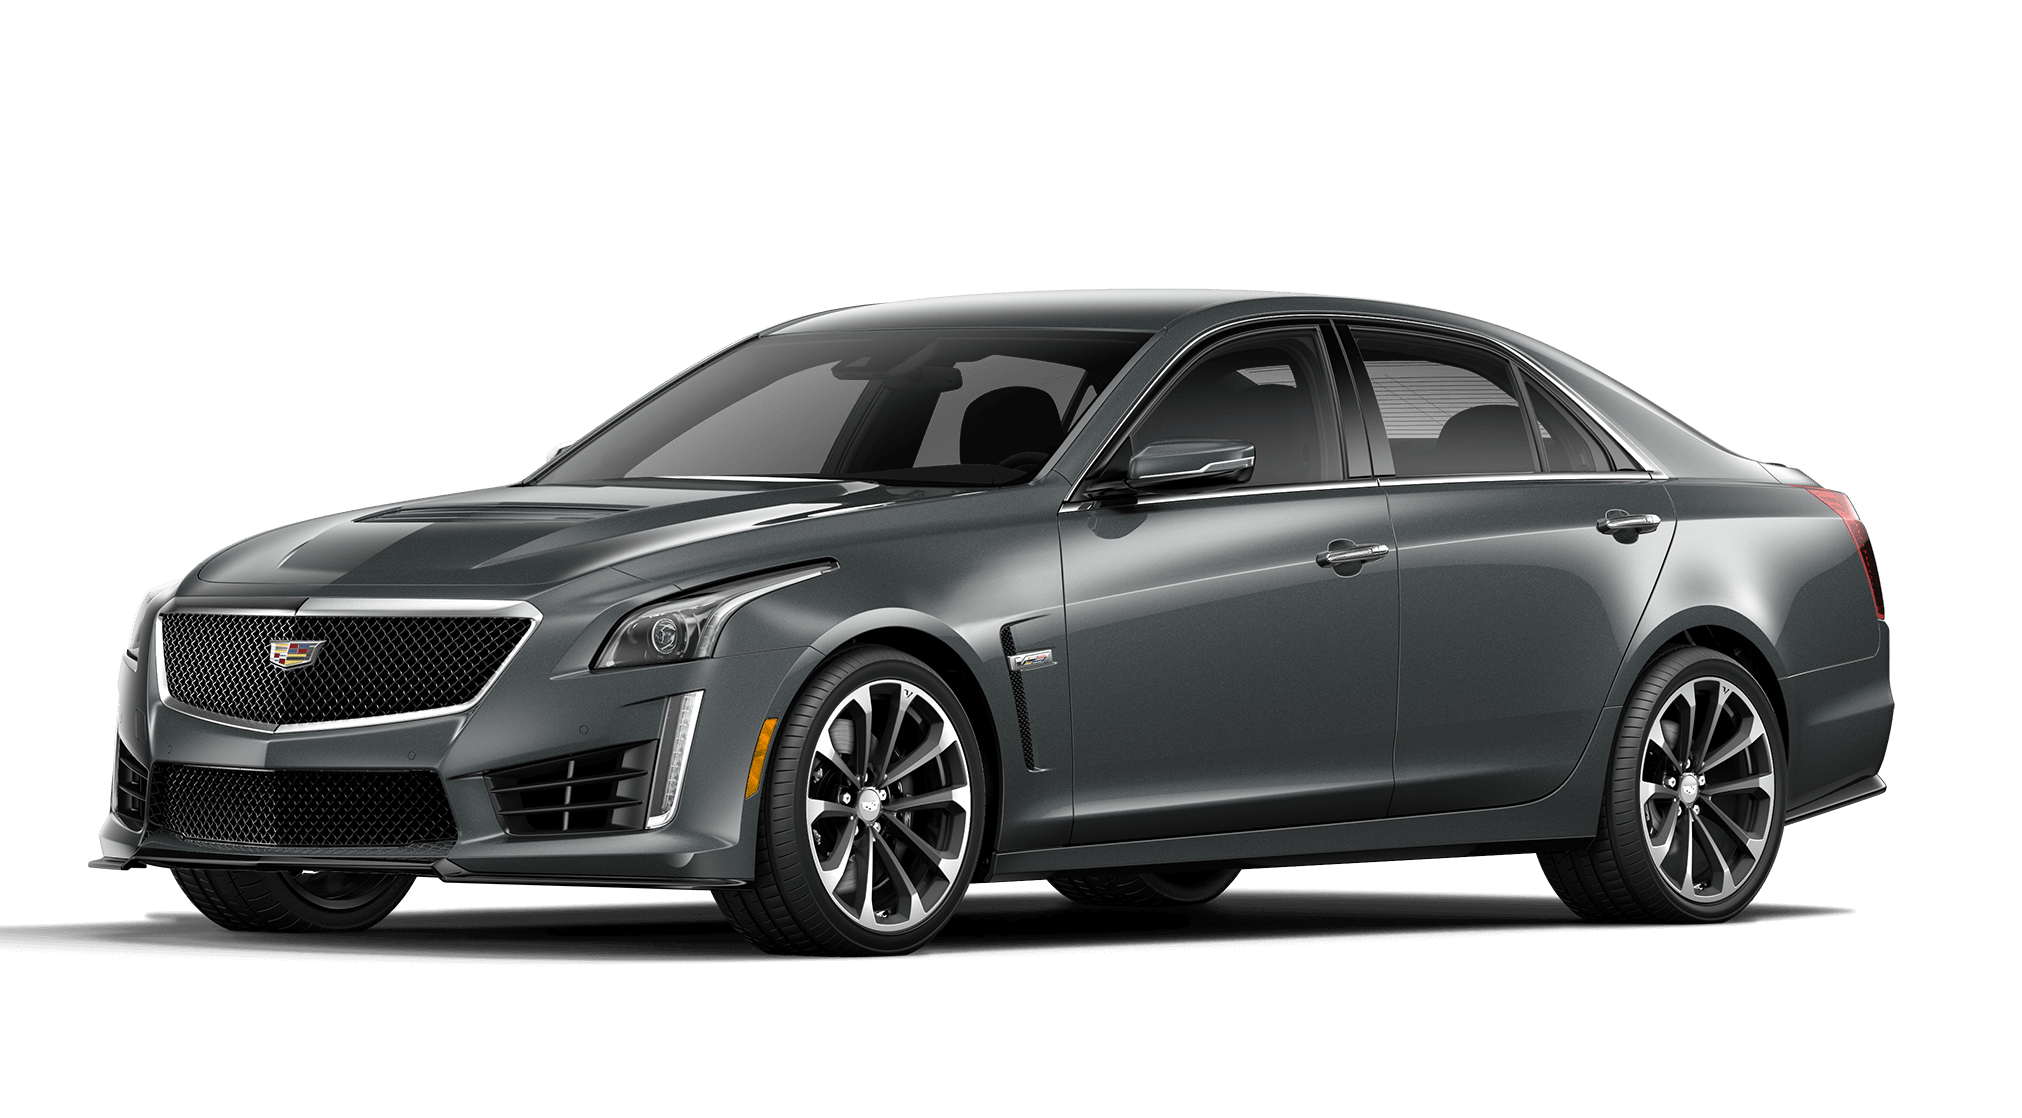 Phantom Grey Cadillac CTS-V